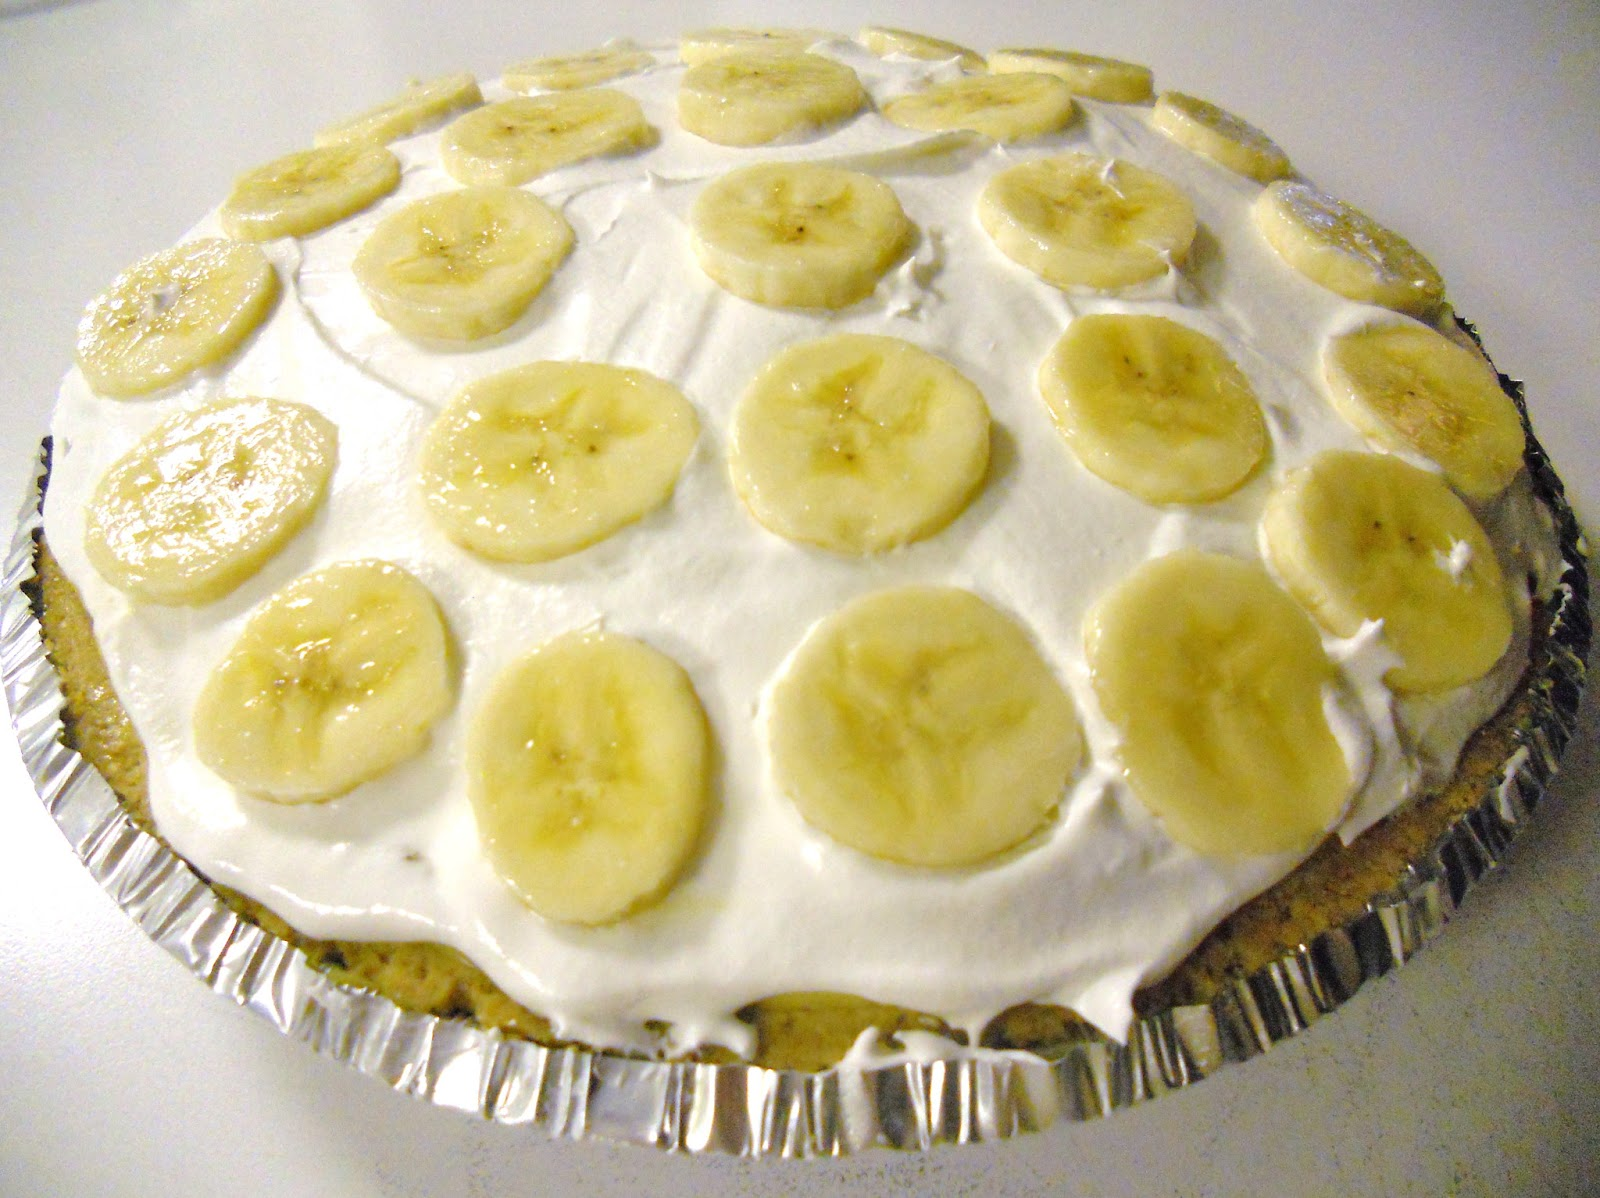 ... , Pies, & Preschool Pizzazz: Friday Pie-Day: Banana Cream Pie